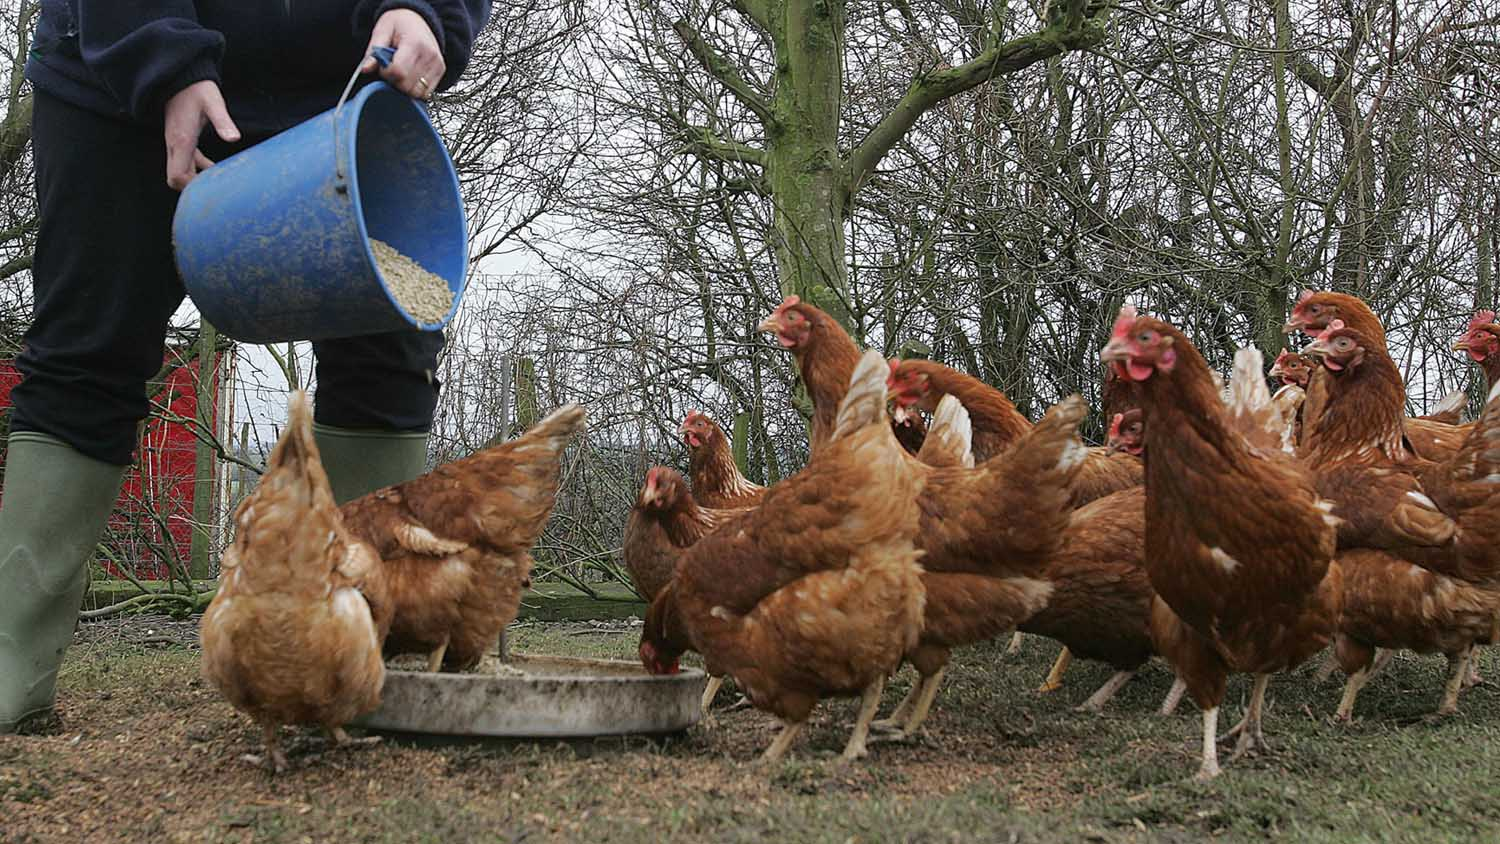 The organic poultry sector has increased 8.5 per cent since 2016 to more than 3 million animals.